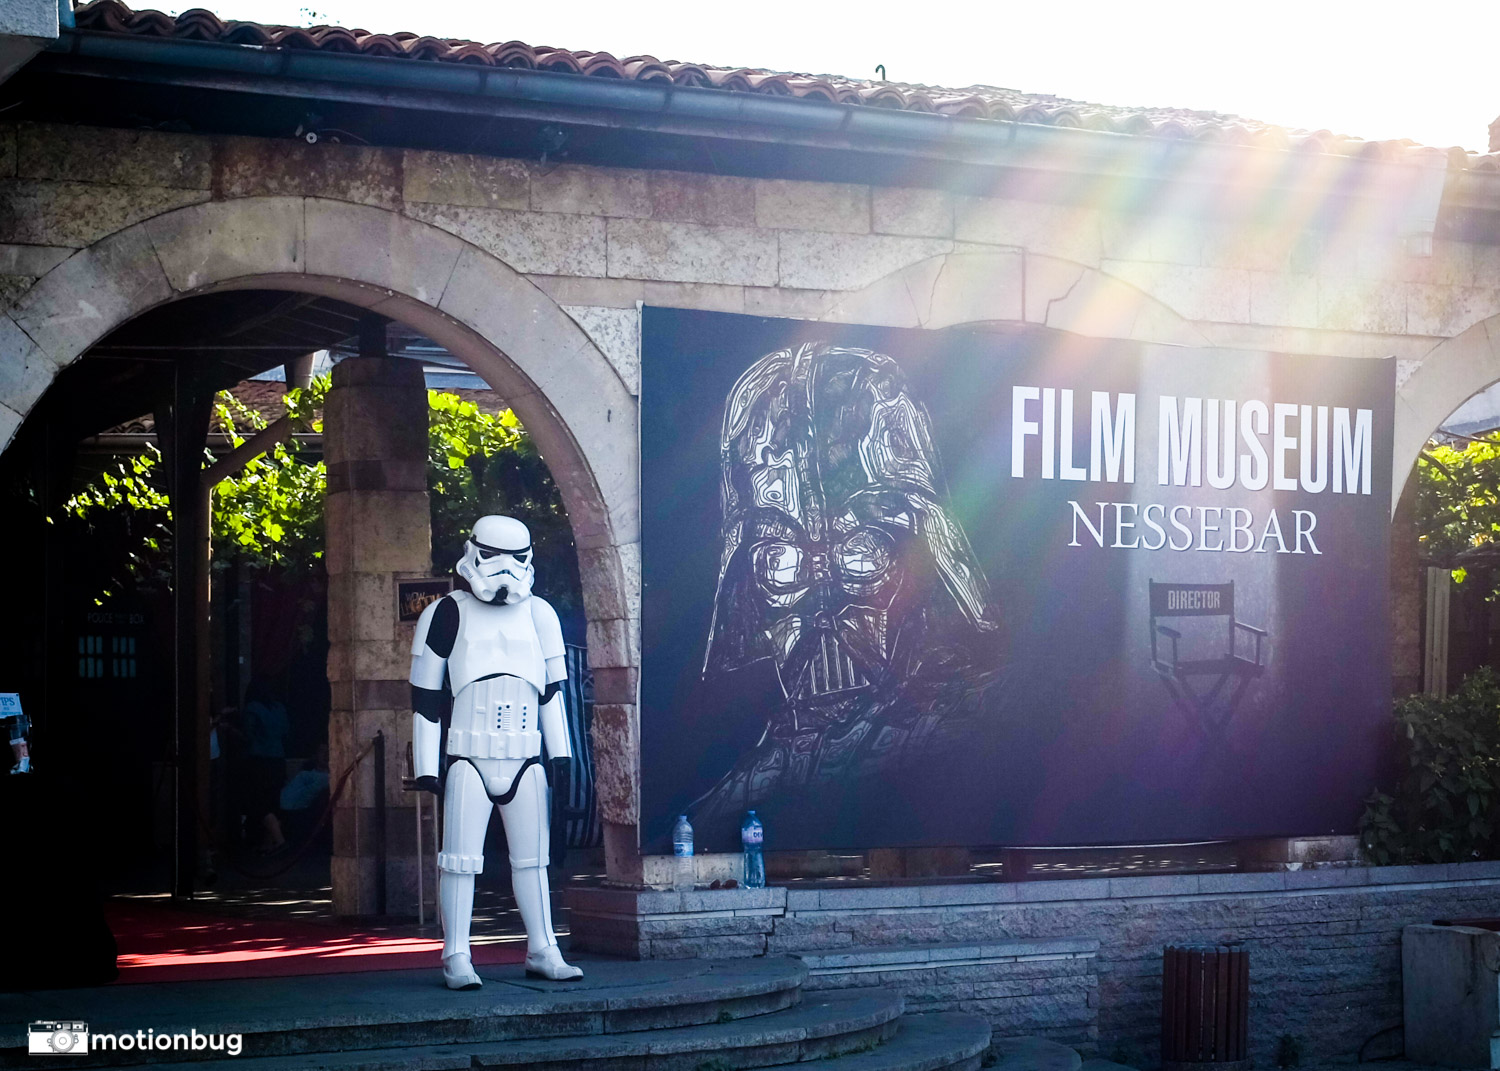 Look what I found in Nessebar, Bulgaria. Wouldn't want to be that guy though, running around in a storm trooper costume at 30+ degrees Celsius.